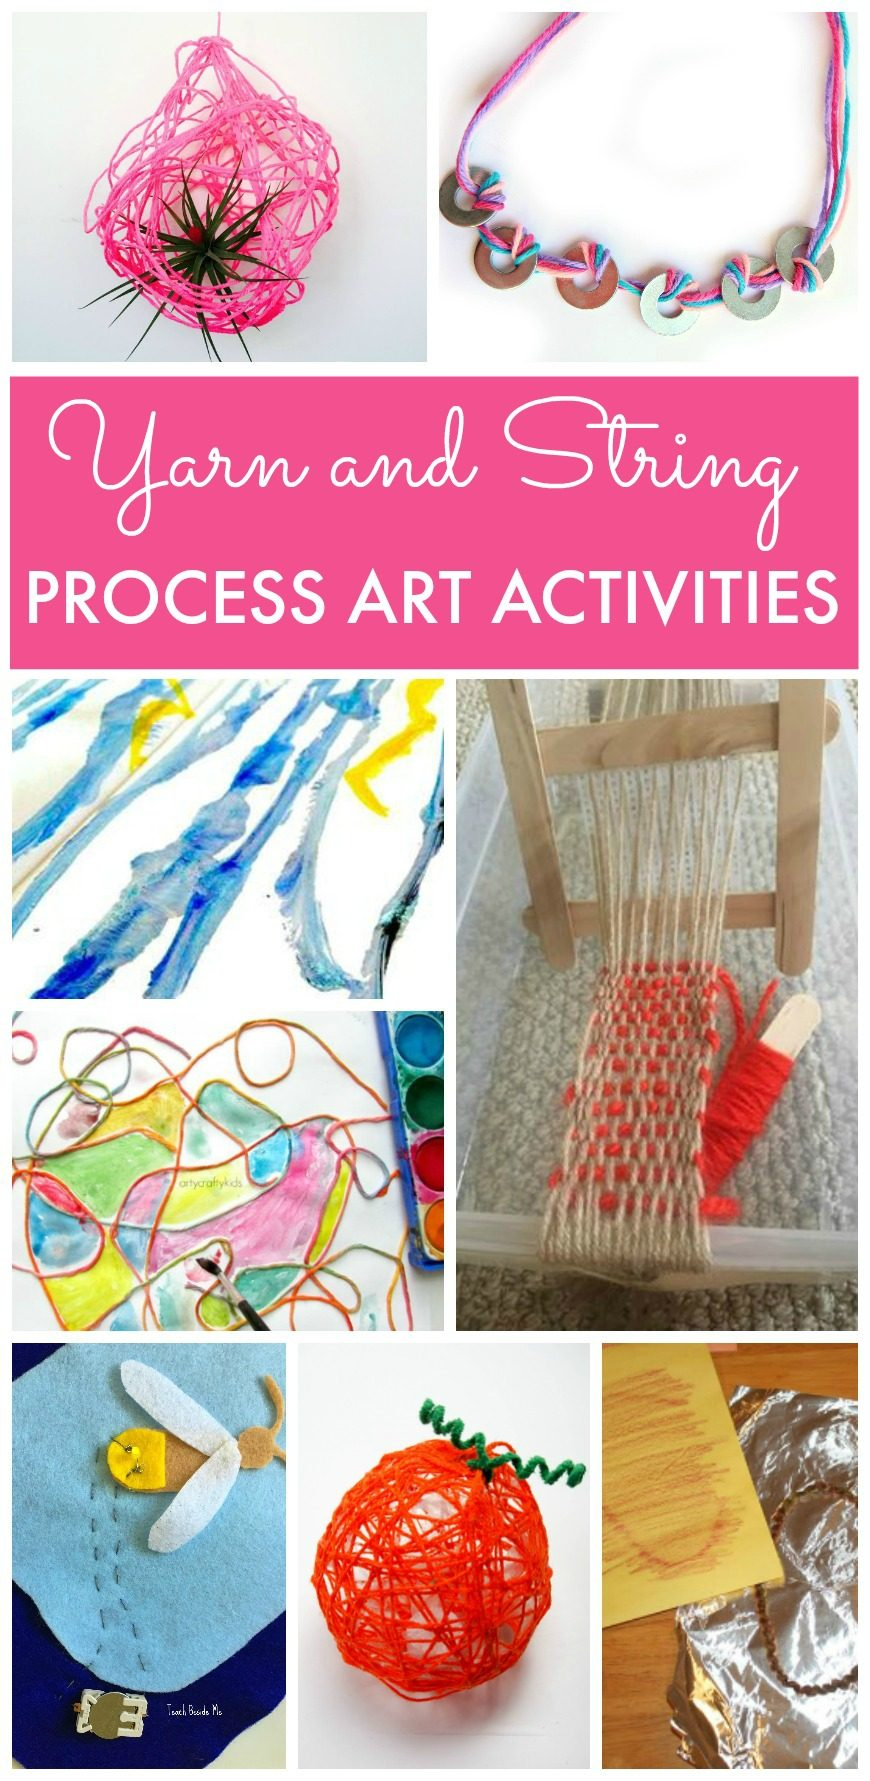 Yarn and String Process Art Activities for kids